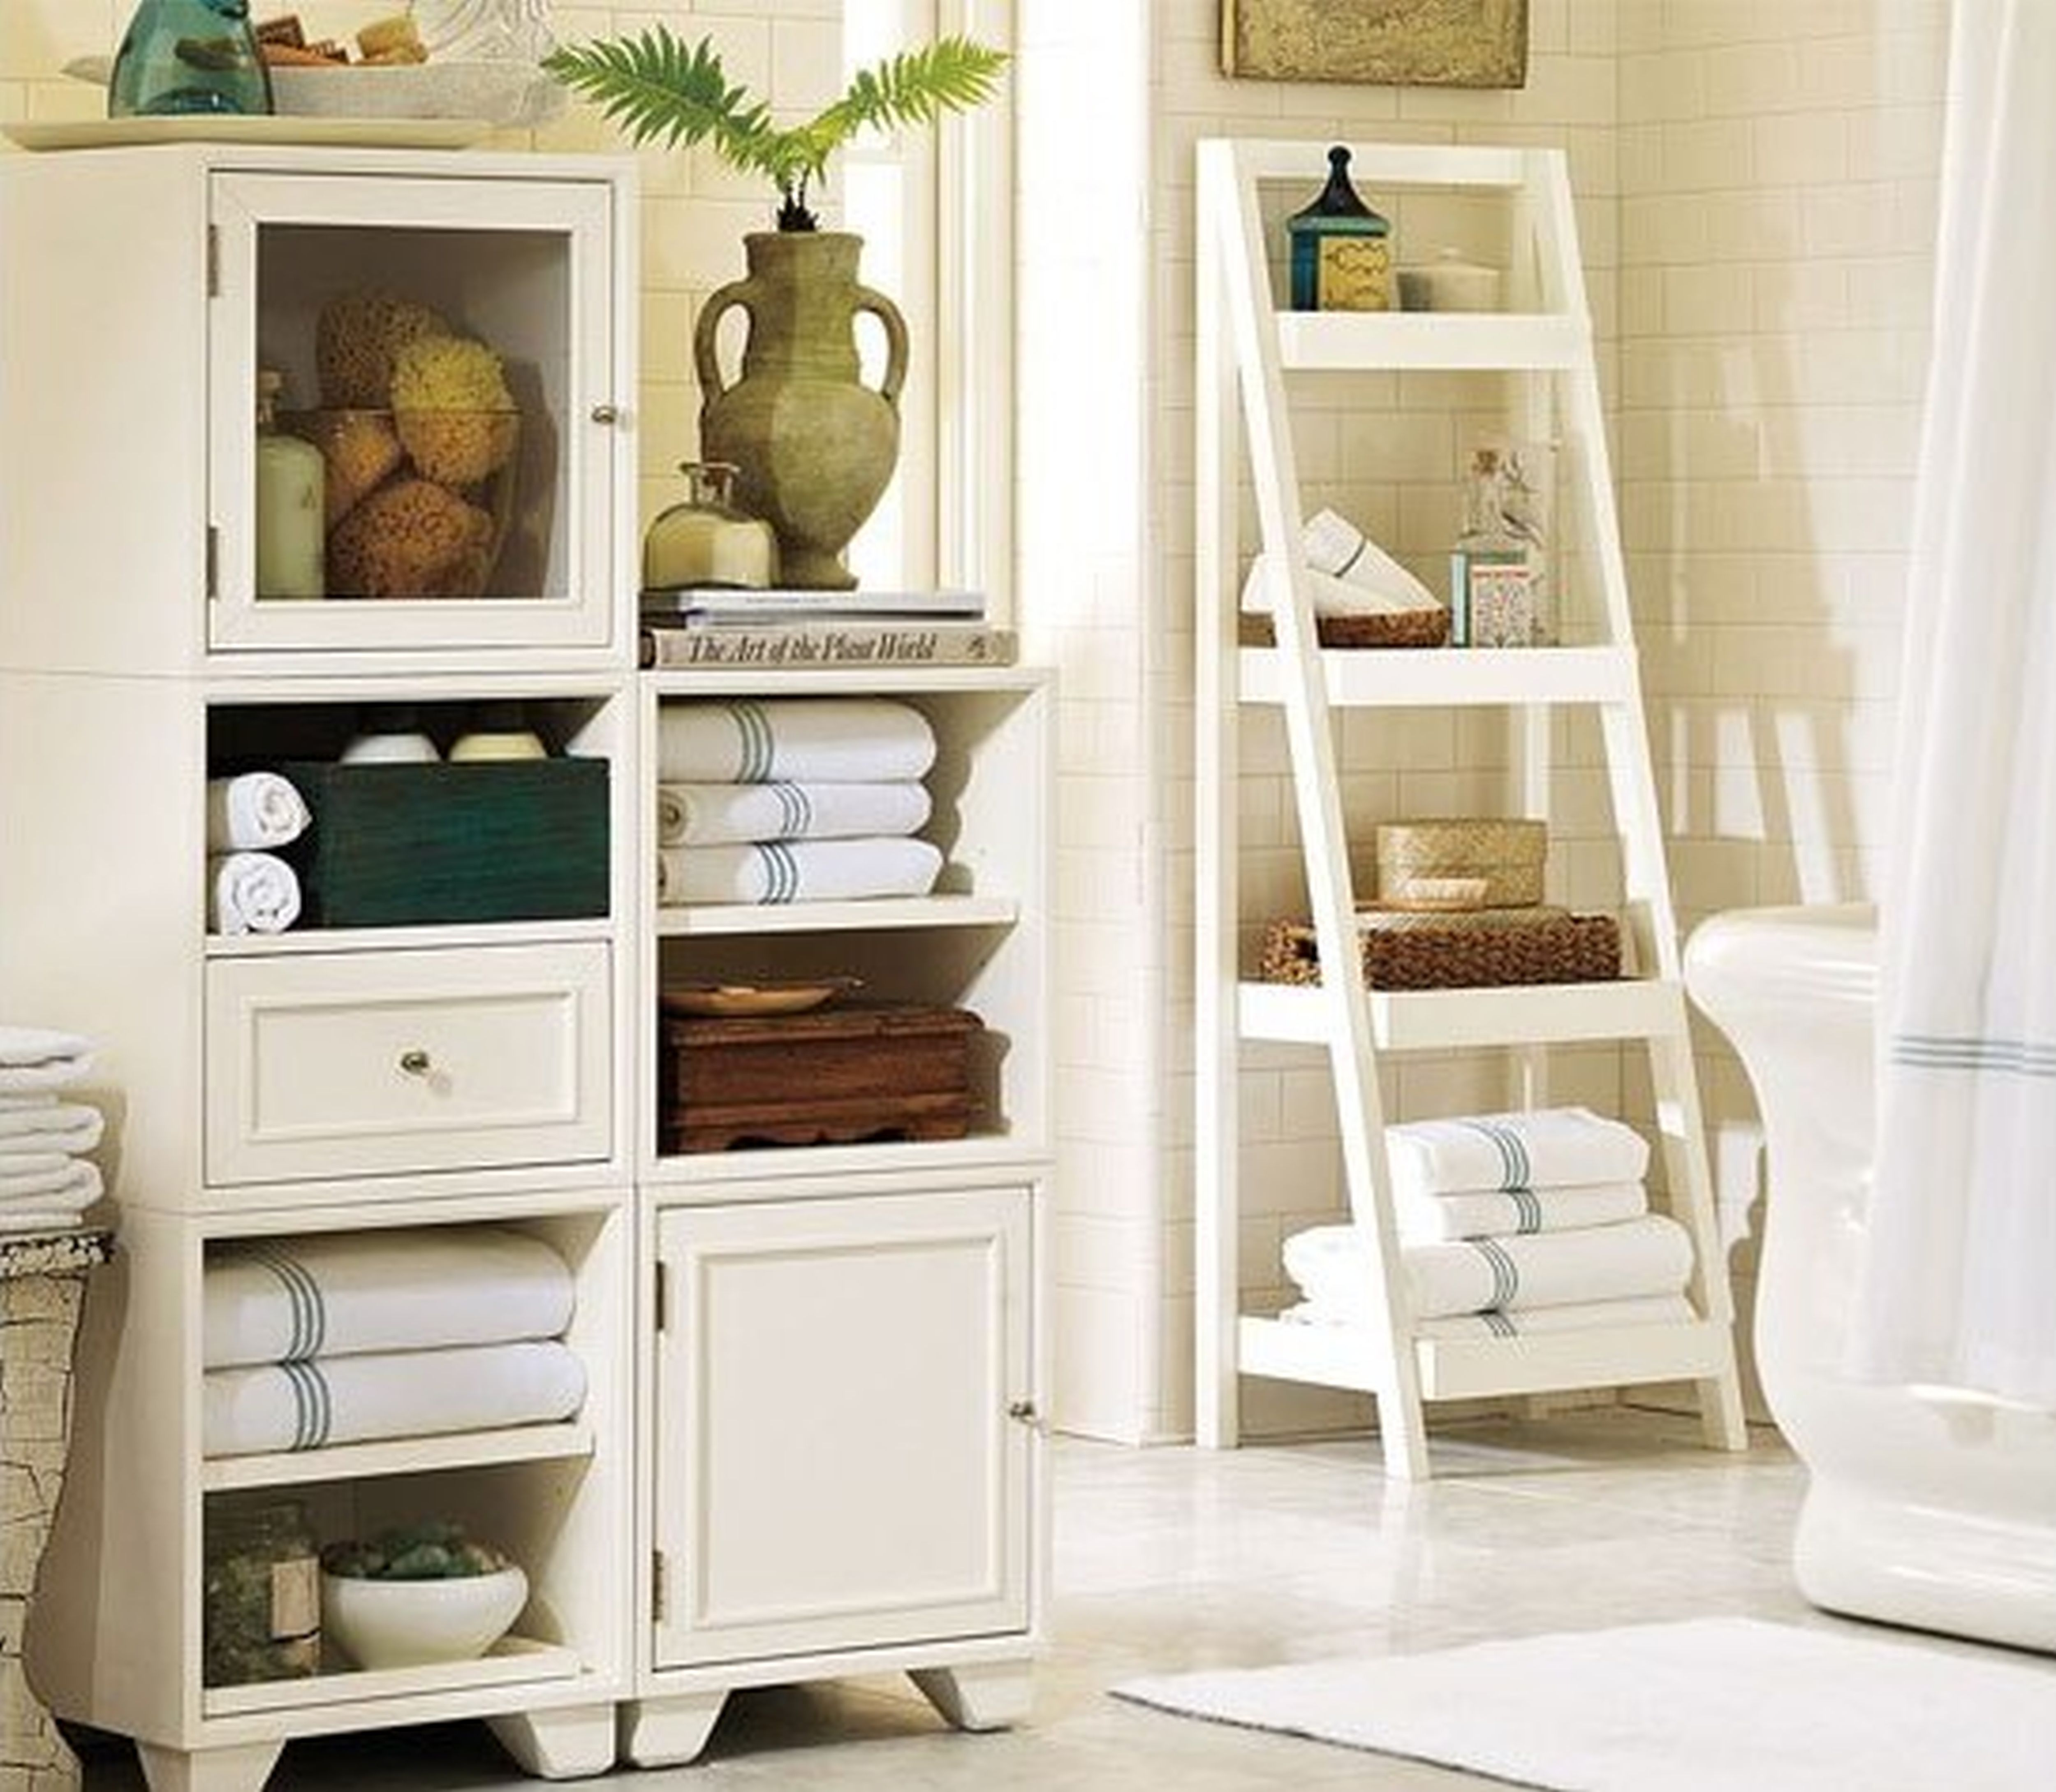 Best Add Glamour With Small Vintage Bathroom Ideas This Month